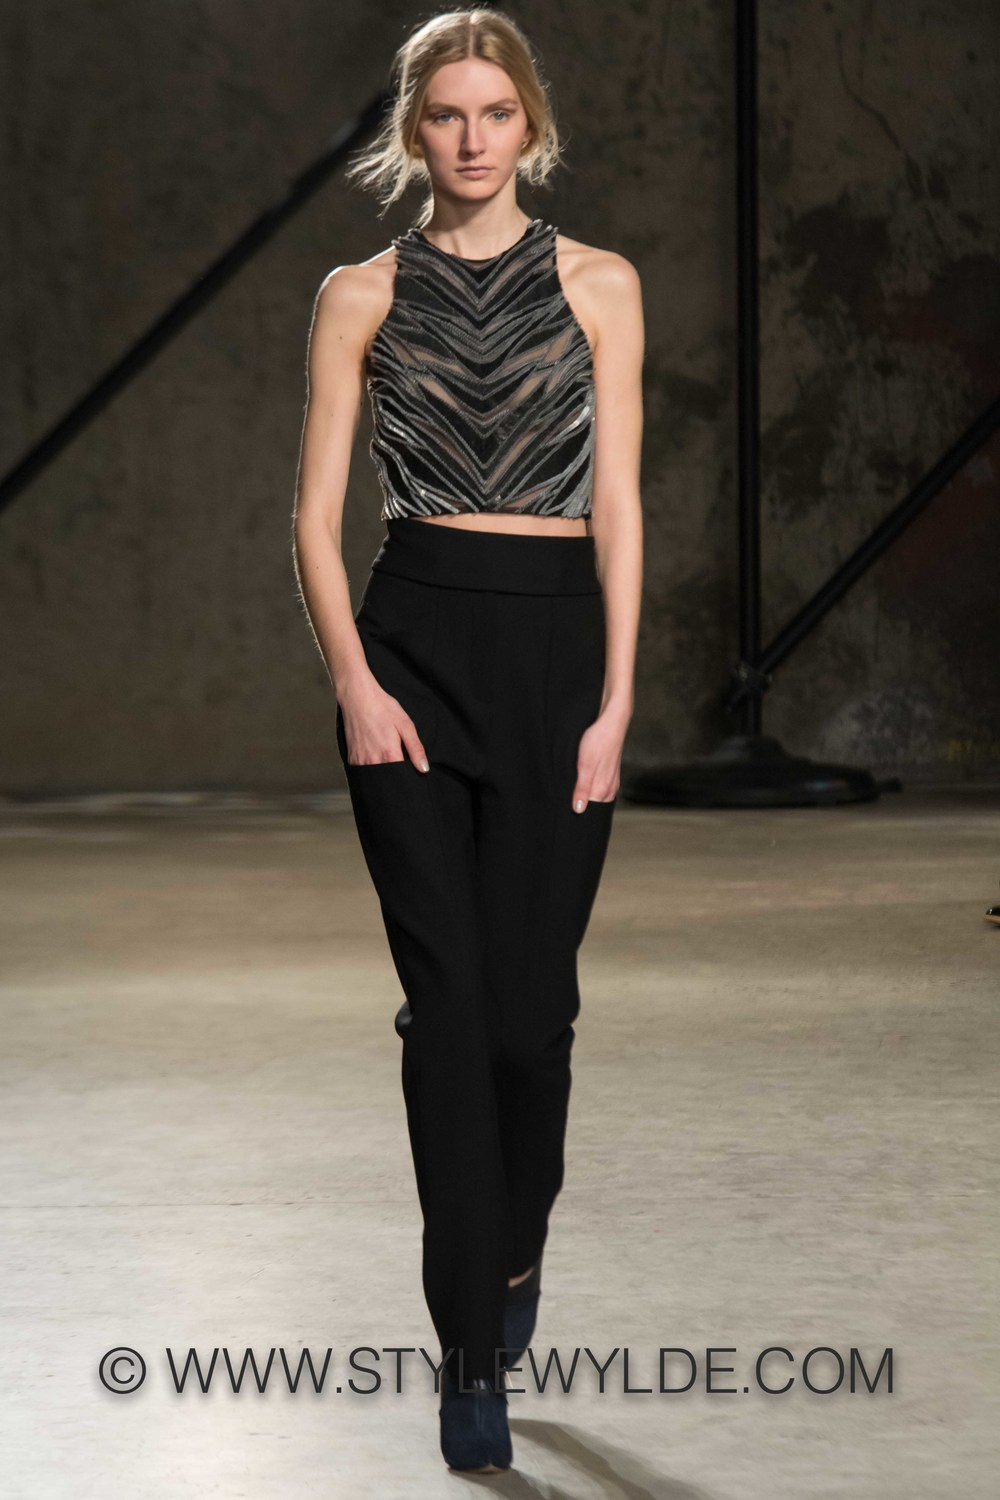 stylewylde_sally_lapointe_fw_2014-26.jpg